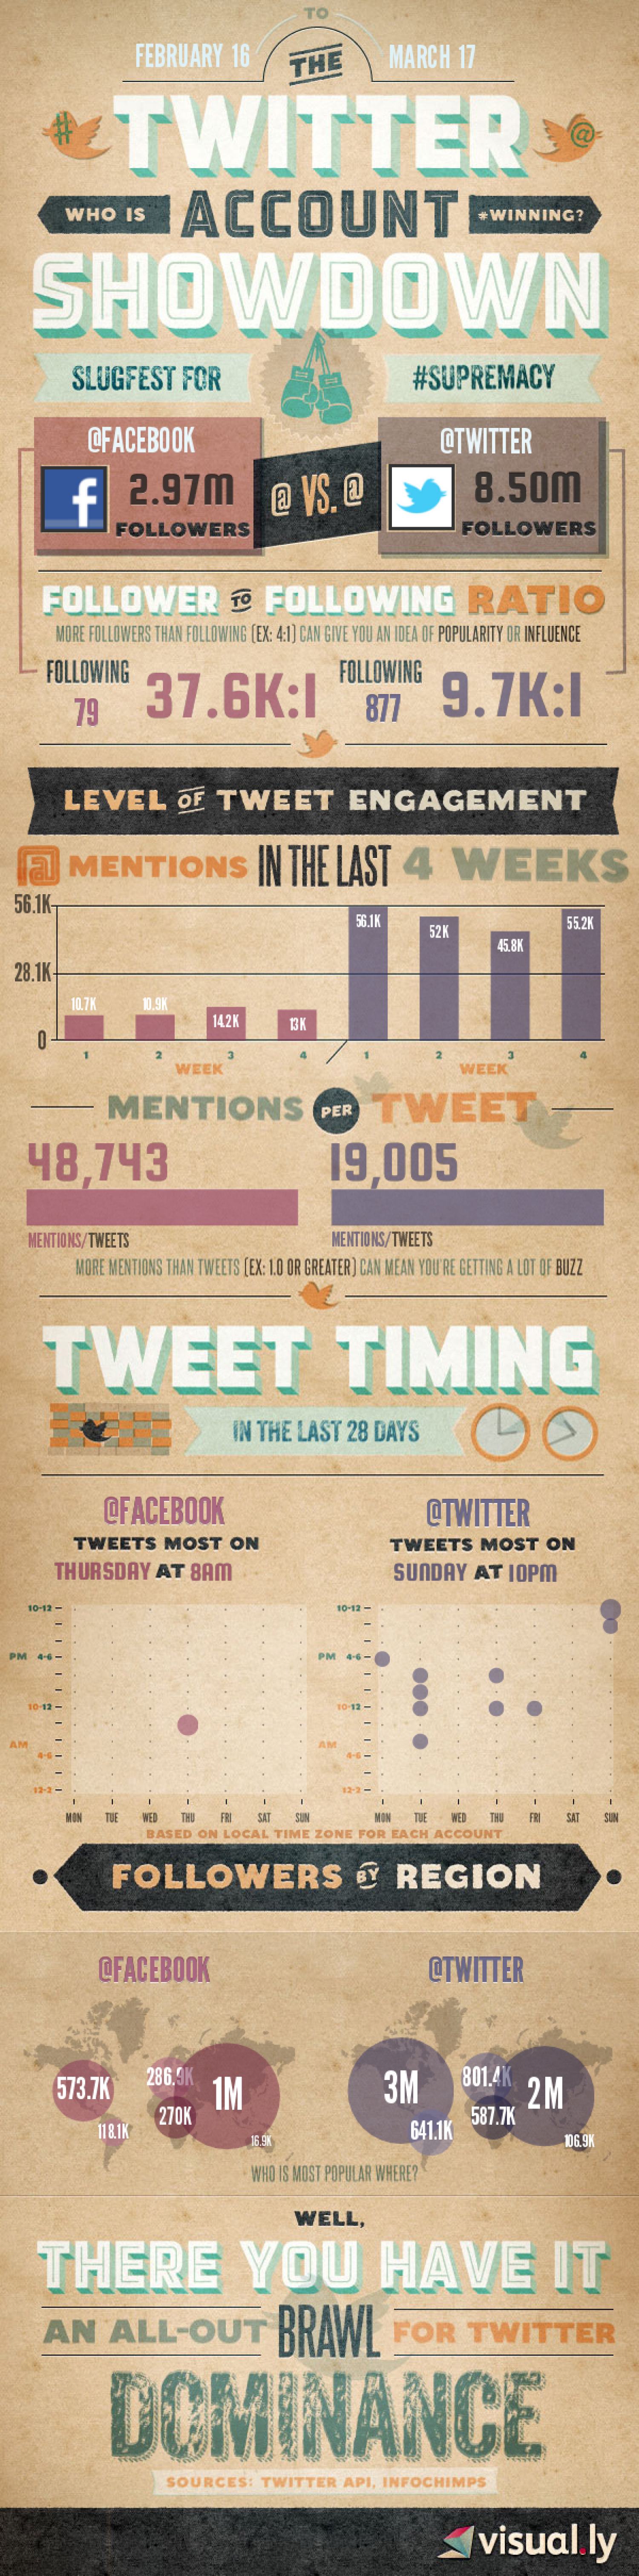 Twitter vs. Facebook Showdown Infographic